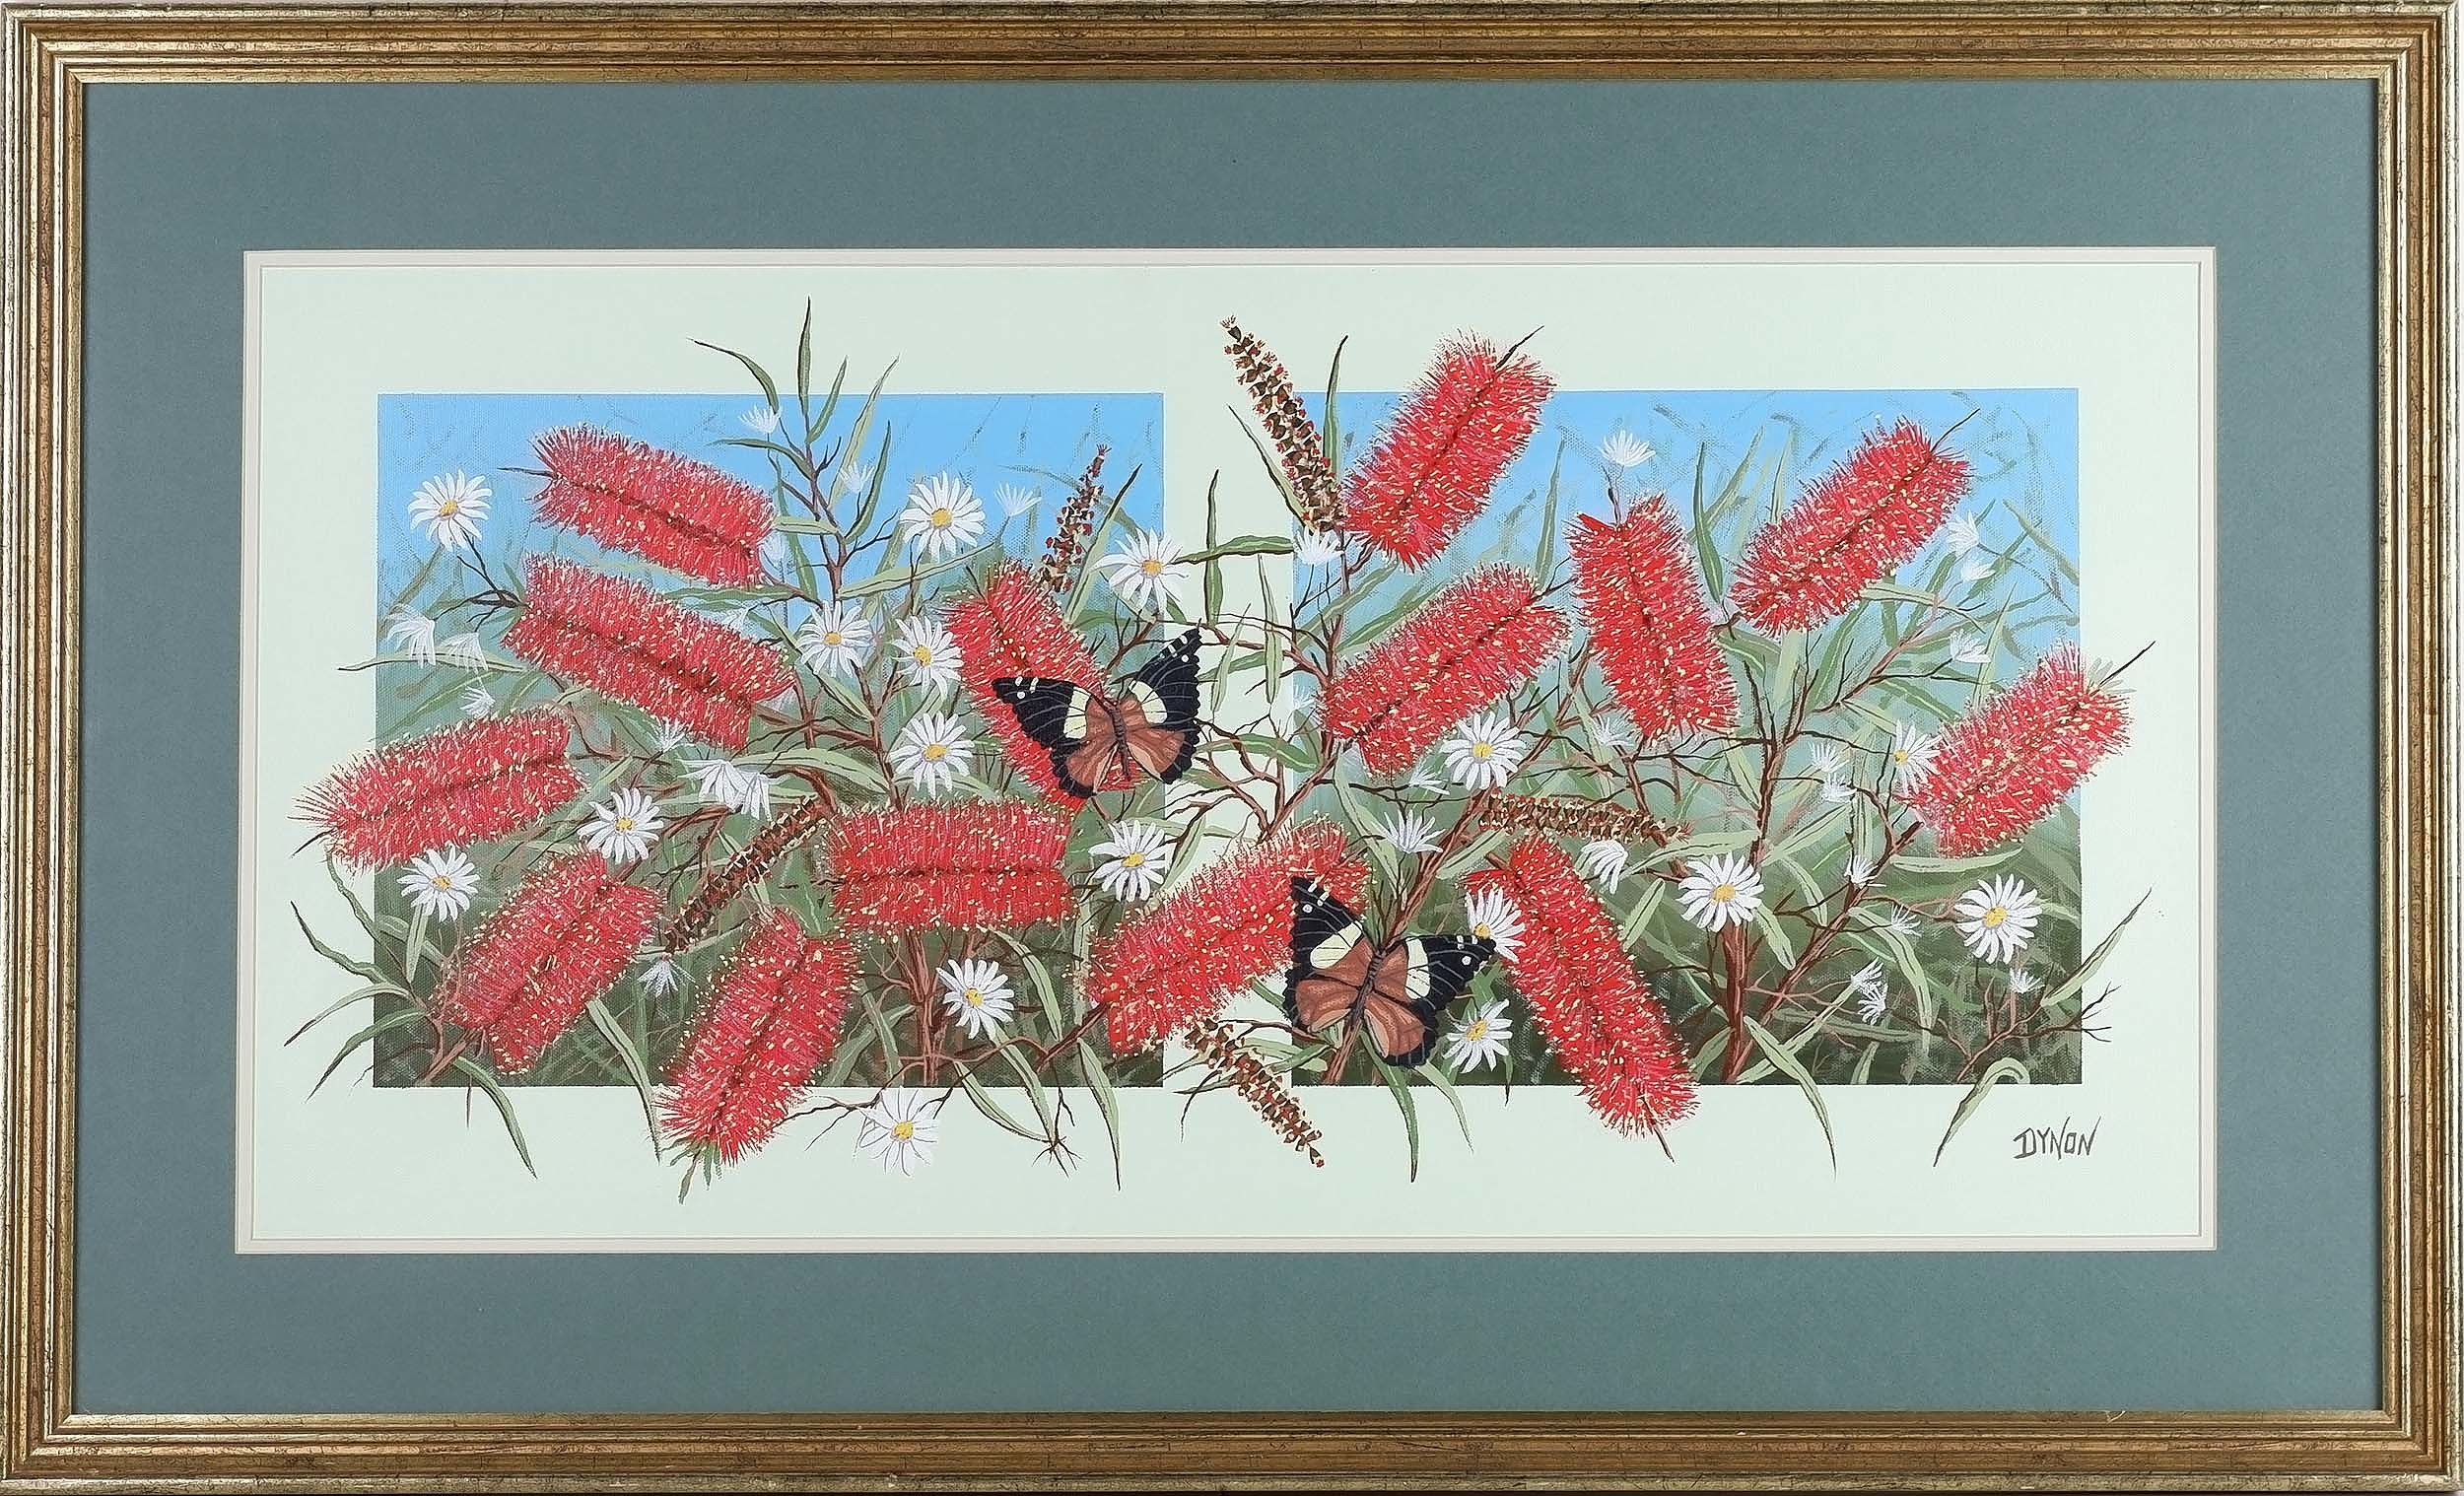 'John Dynon (1954-) Butterflies in the Bottle Brush Oil on Canvas'